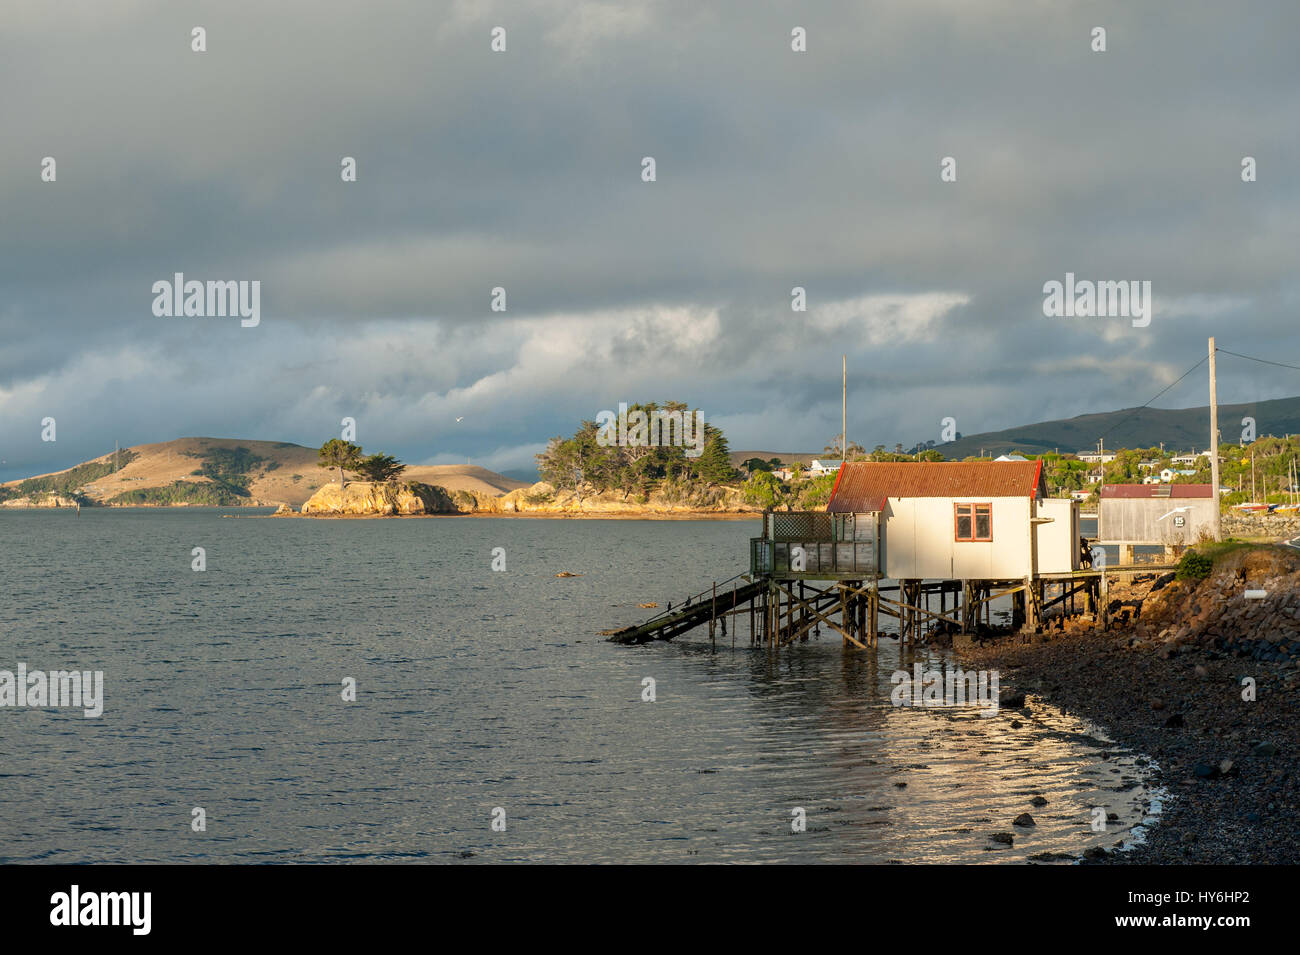 Otago Peninsula and Otago Harbour during sunset east of Dunedin, New Zealand - Stock Image